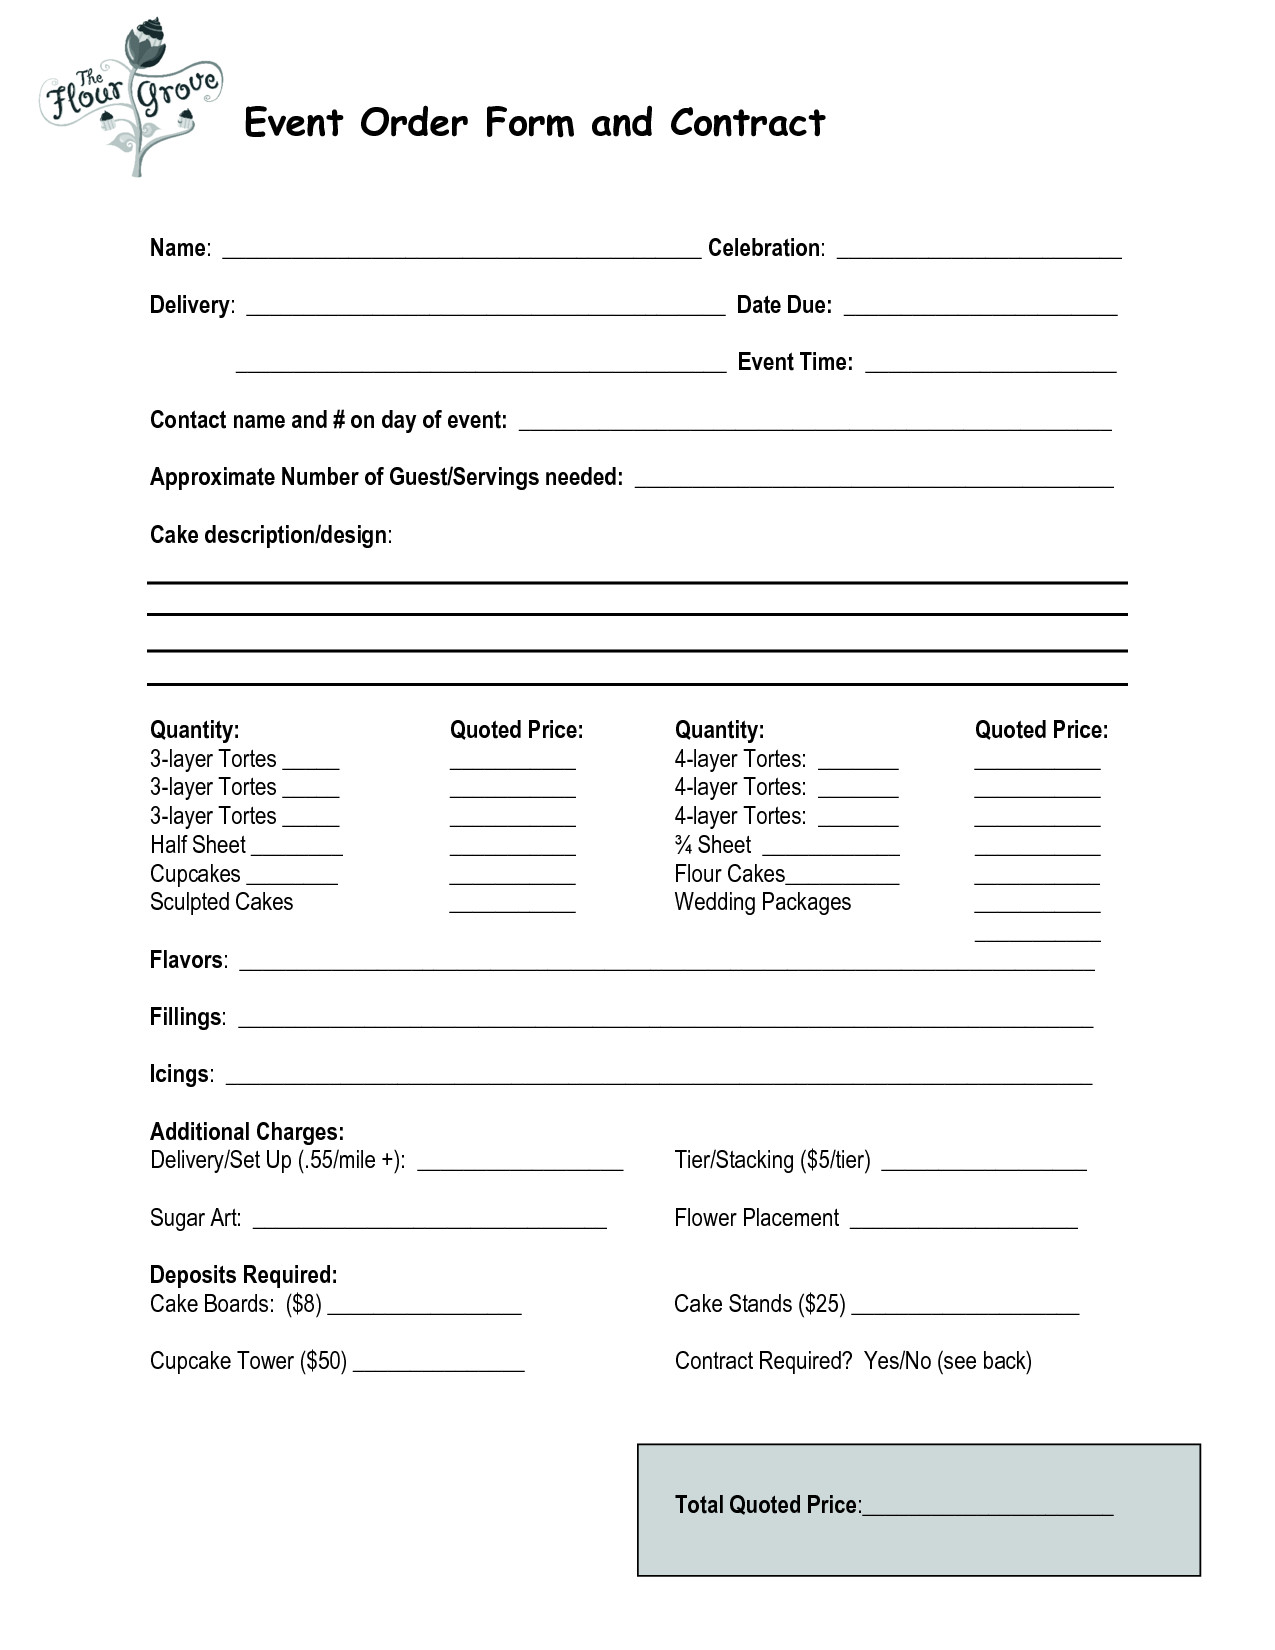 Cake order form Templates Cake order Contract event order form and Contract